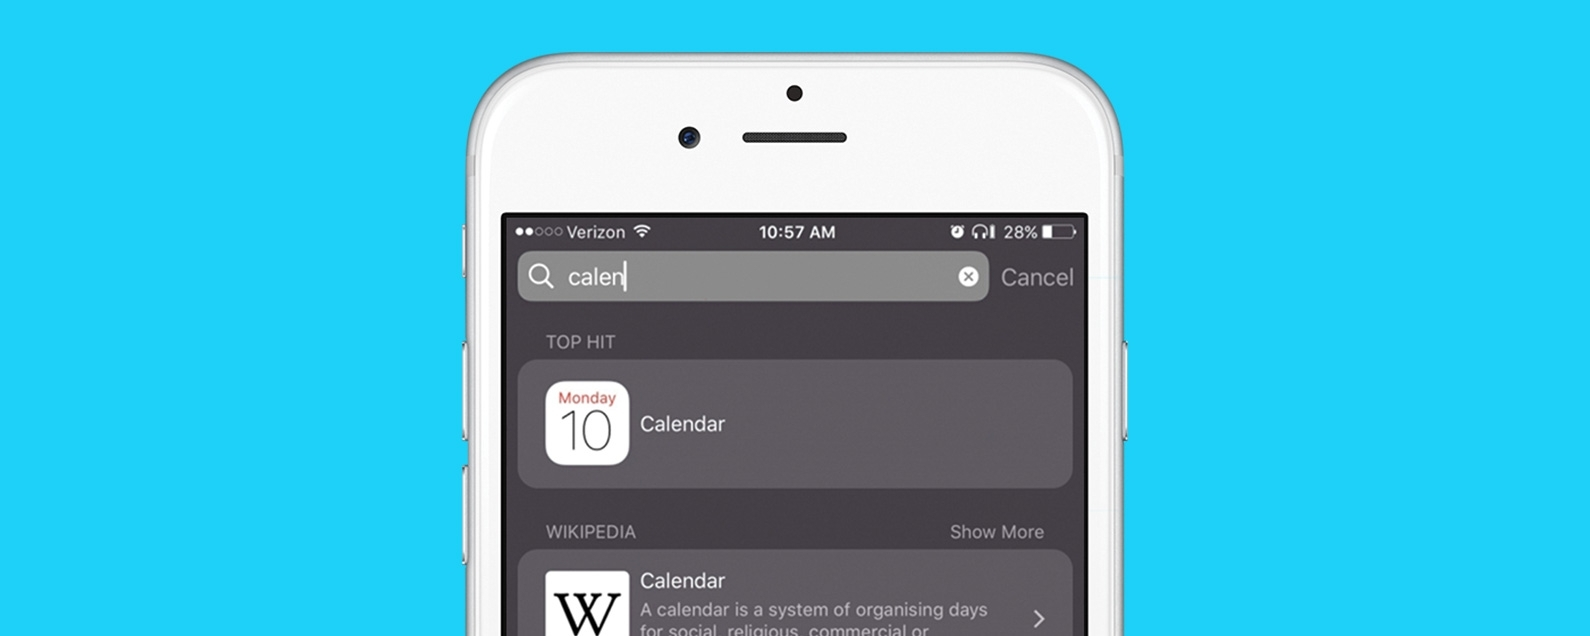 Calendar Icon Disappeared From Iphone 5